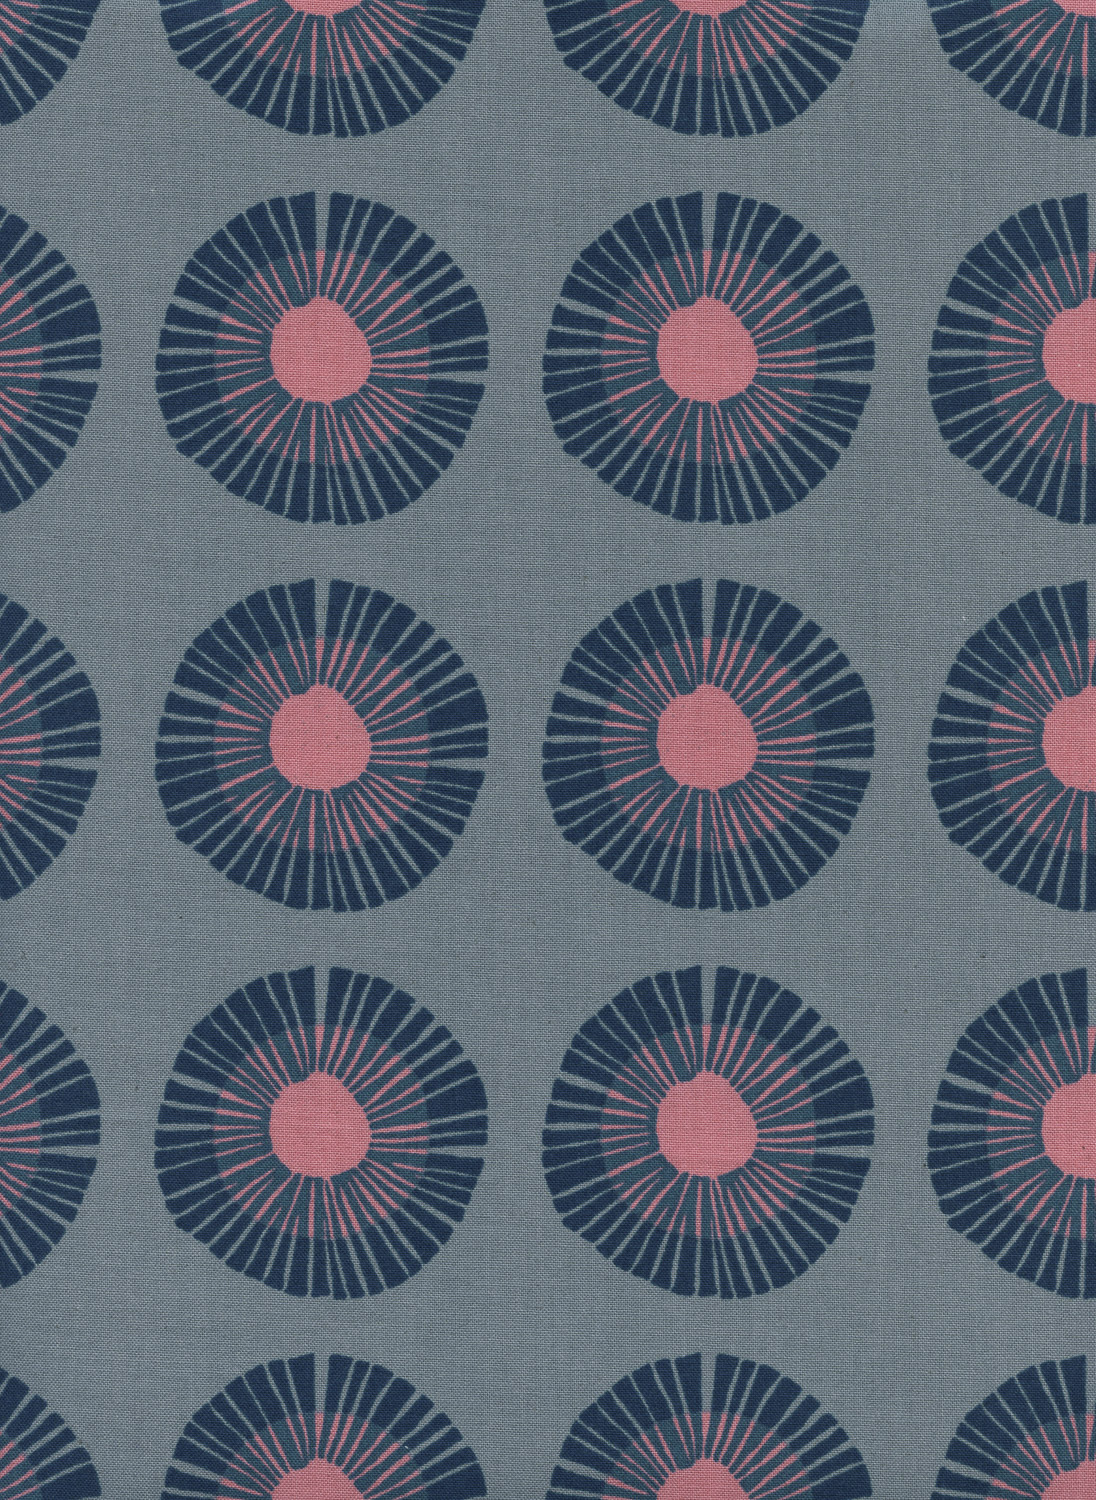 Seaside Daisy in Slate by Jen Hewitt from the Imagined Landscapes collection for Cotton and Steel #J9014-001